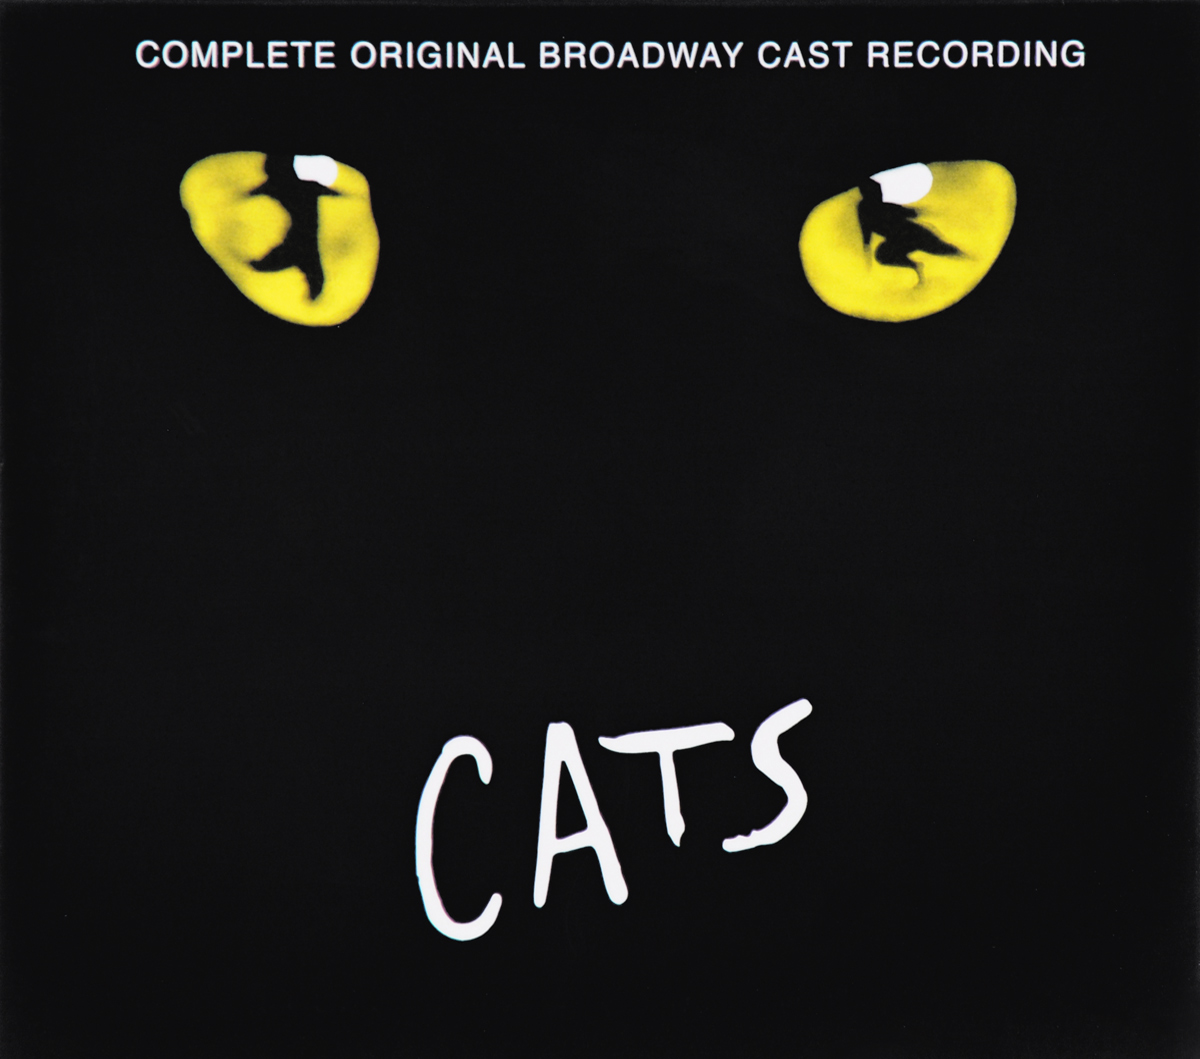 Original Broadway Cast Chorus Andrew Lloyd Webber. Cats. Complete Original Broadway Cast Recording. Deluxe Edition (2 CD) купить недорого в Москве